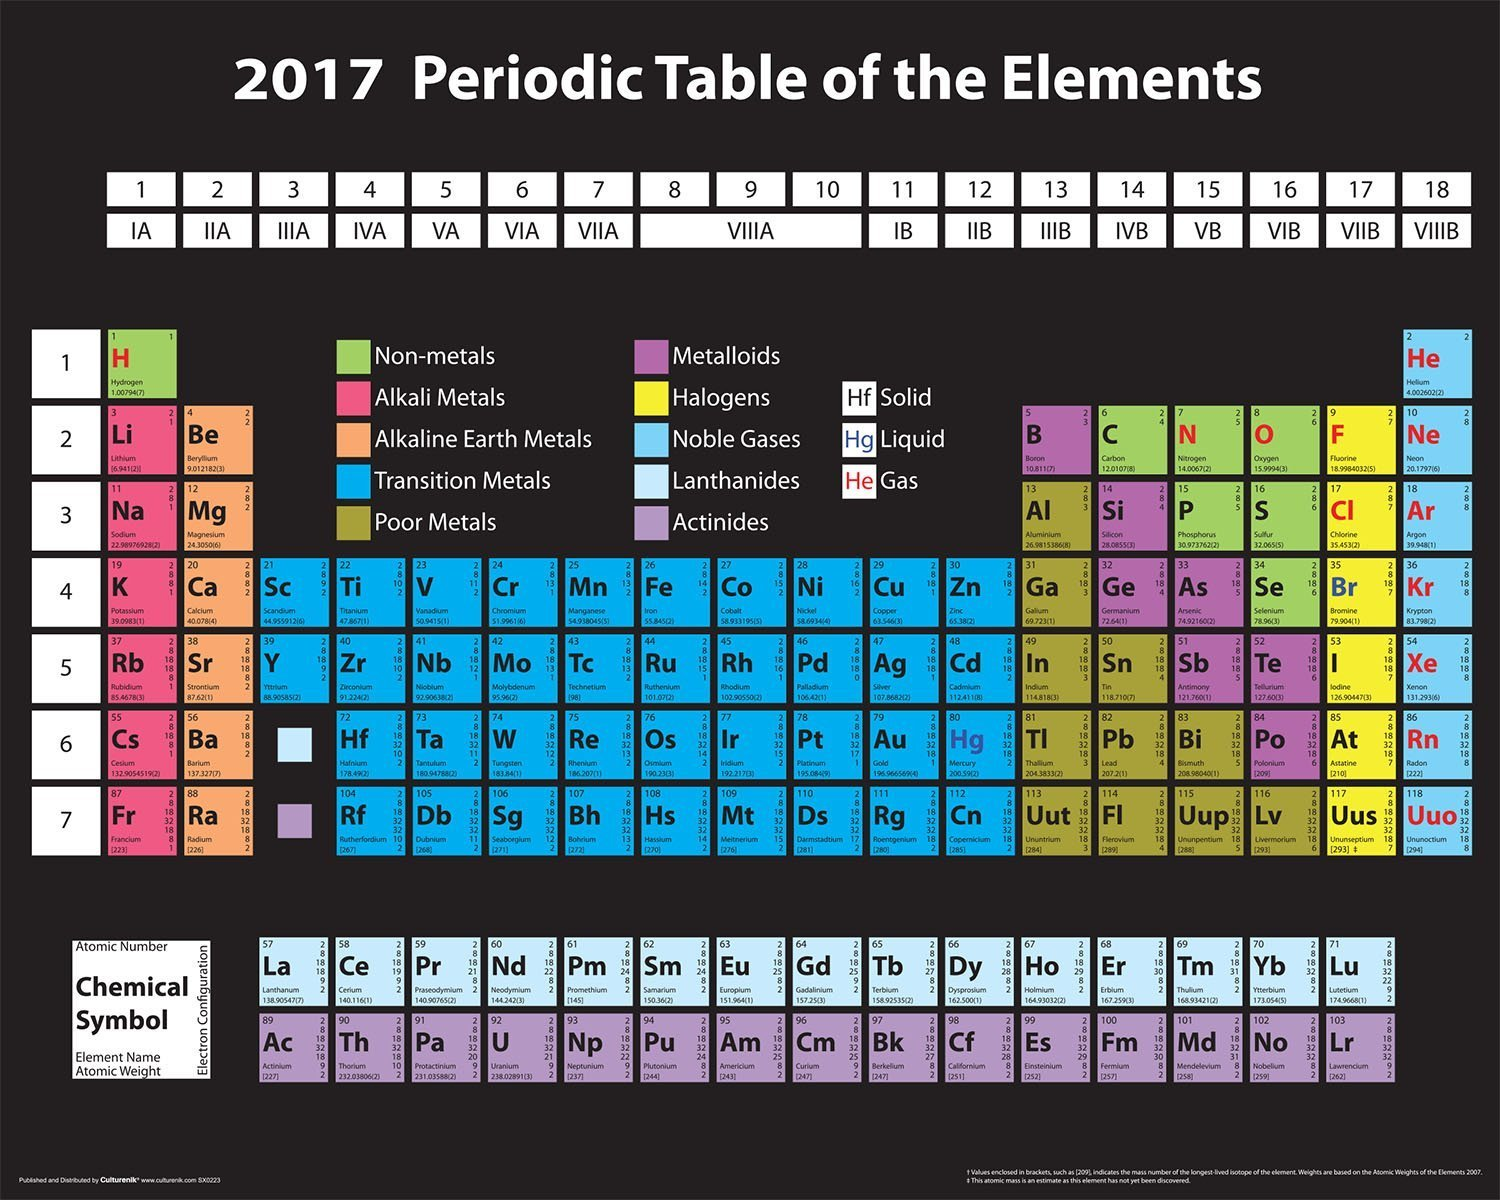 Amazon periodic table of elements 2017 decorative educational amazon periodic table of elements 2017 decorative educational science classroom poster print unframed 16x20 posters prints gamestrikefo Images